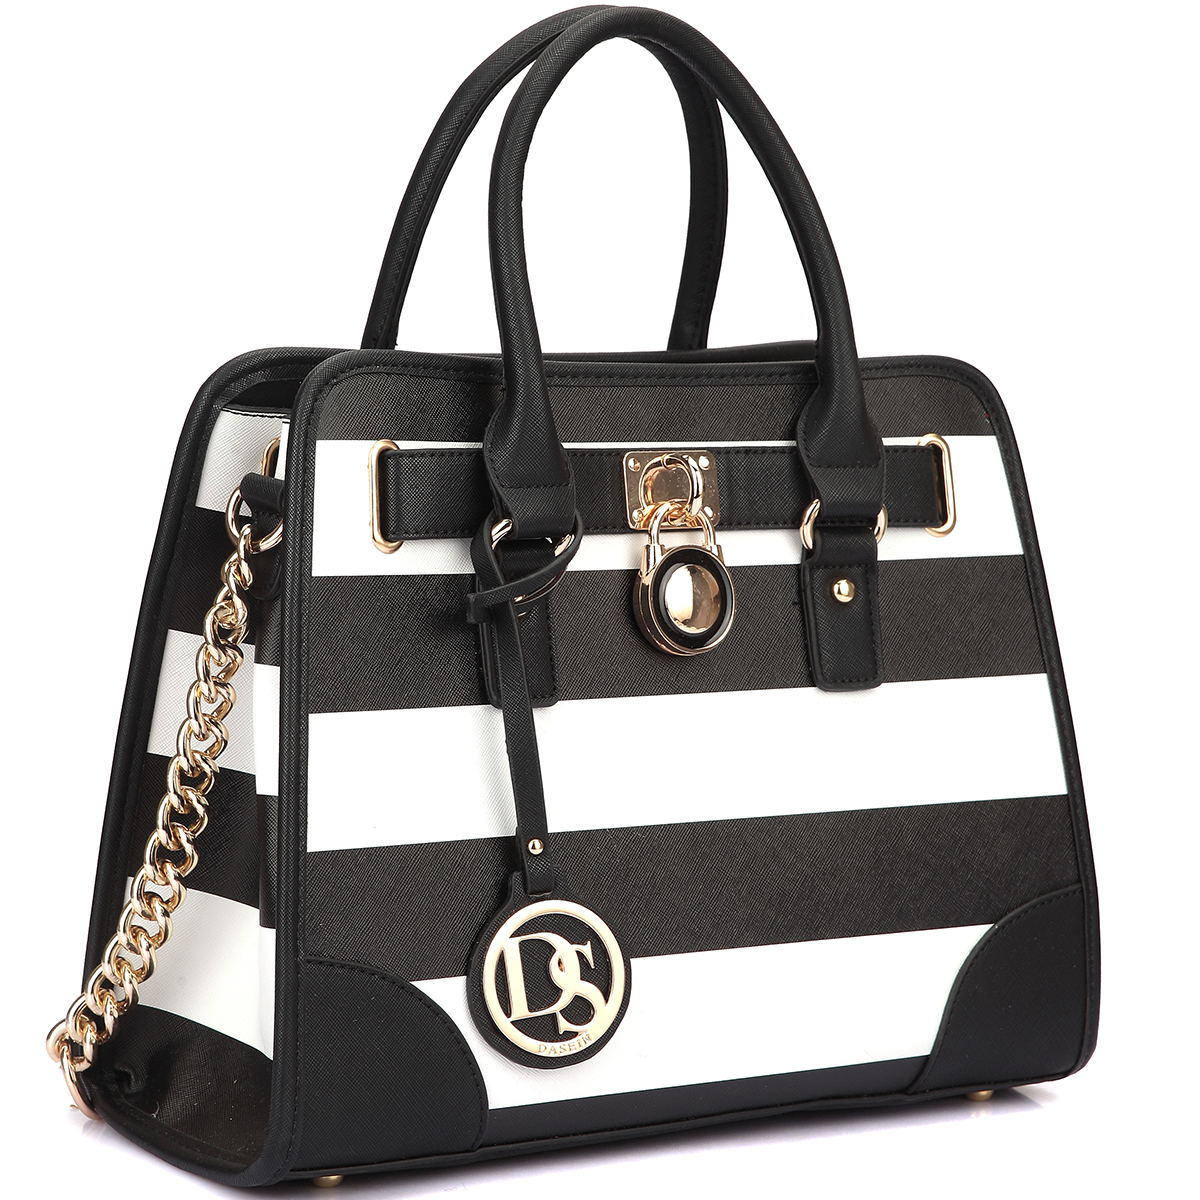 Stripe Medium Satchel with Shoulder Strap